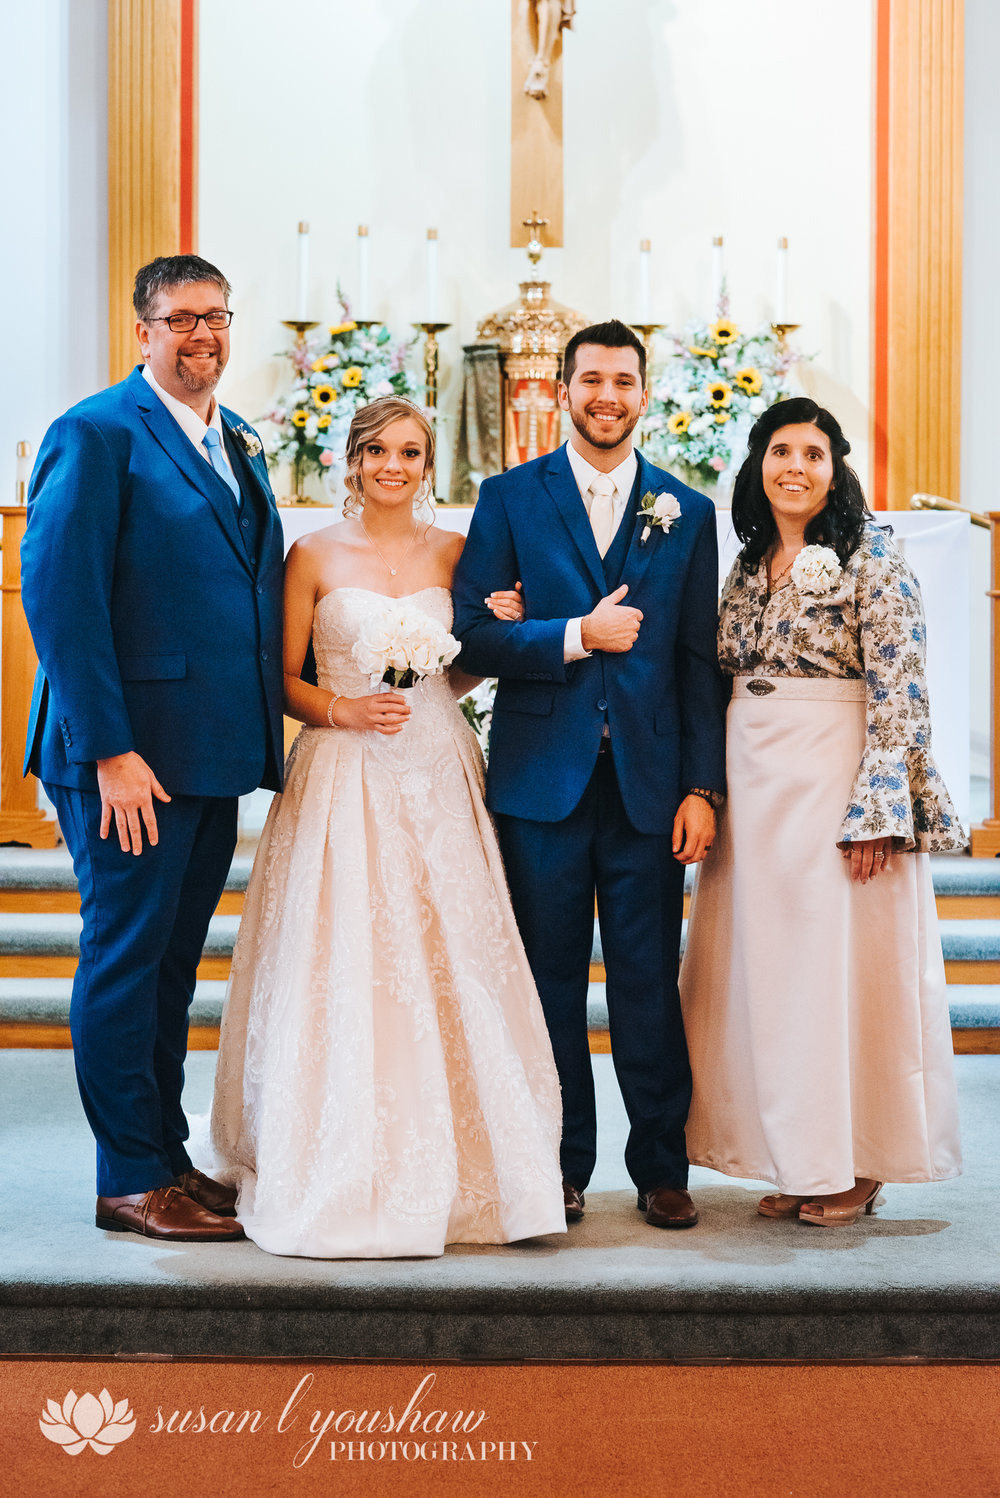 BLOG Kylie and corey Bennet 10-13-2018 SLY Photography LLC-64.jpg